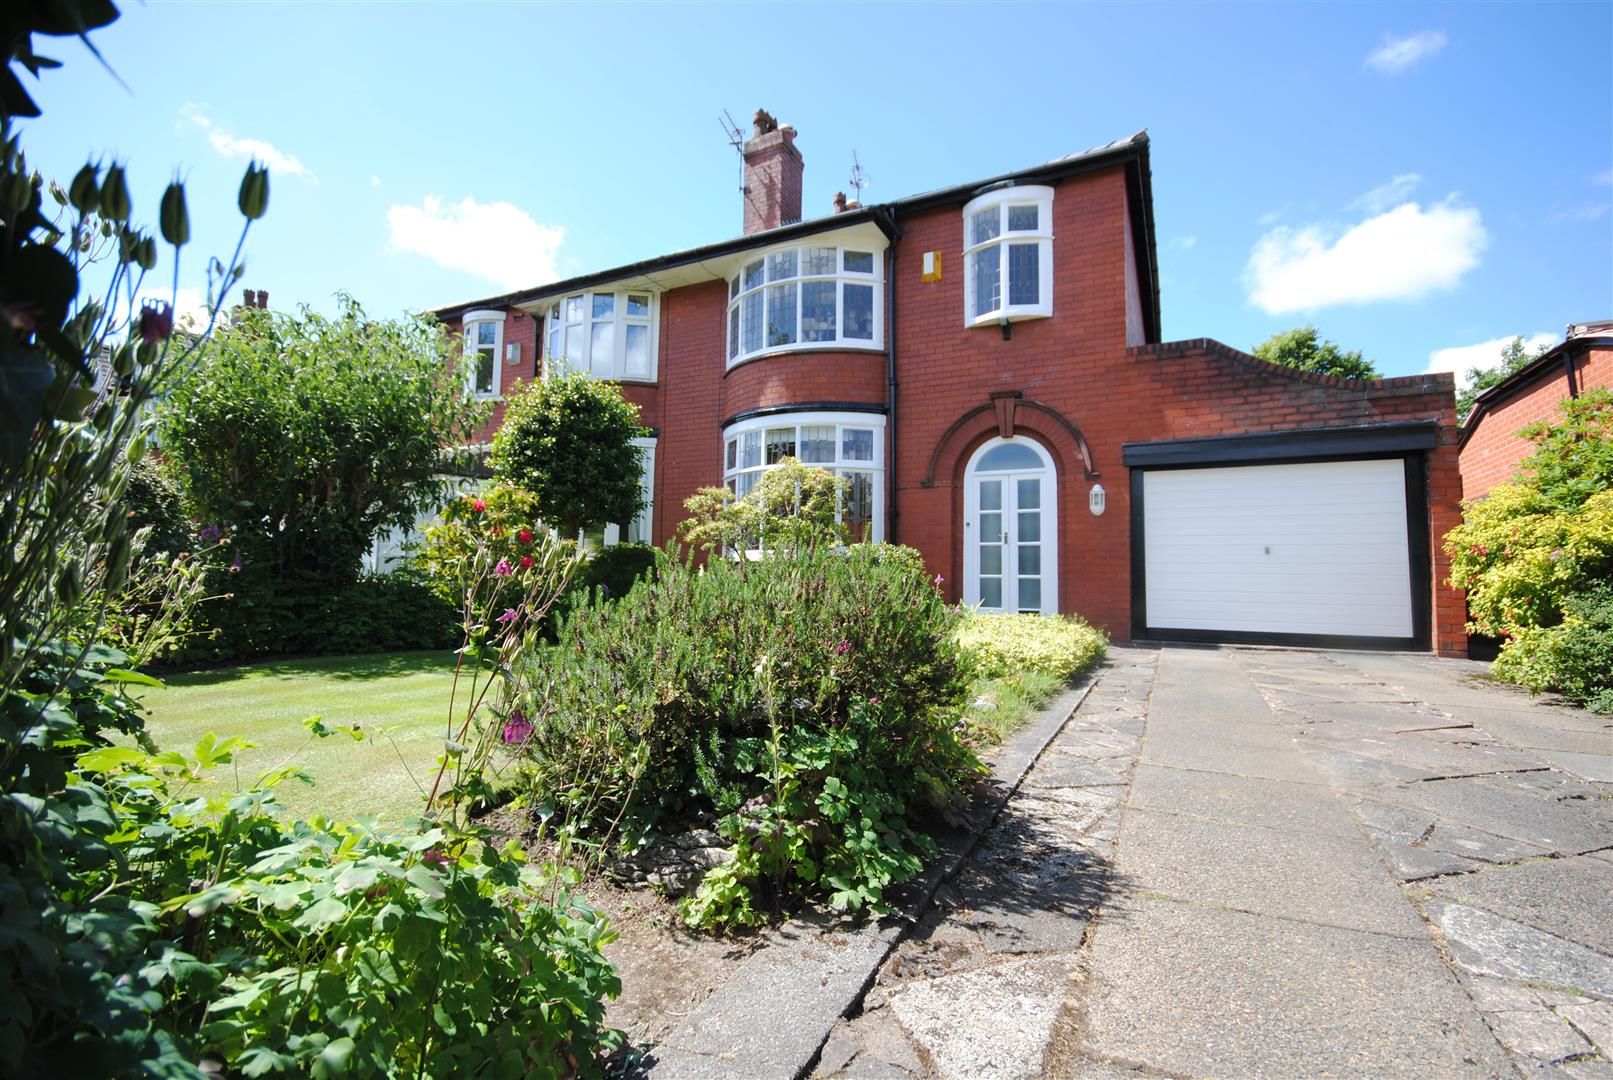 3 Bedrooms Semi Detached House for sale in Whitley Crescent, Whitley, Wigan.